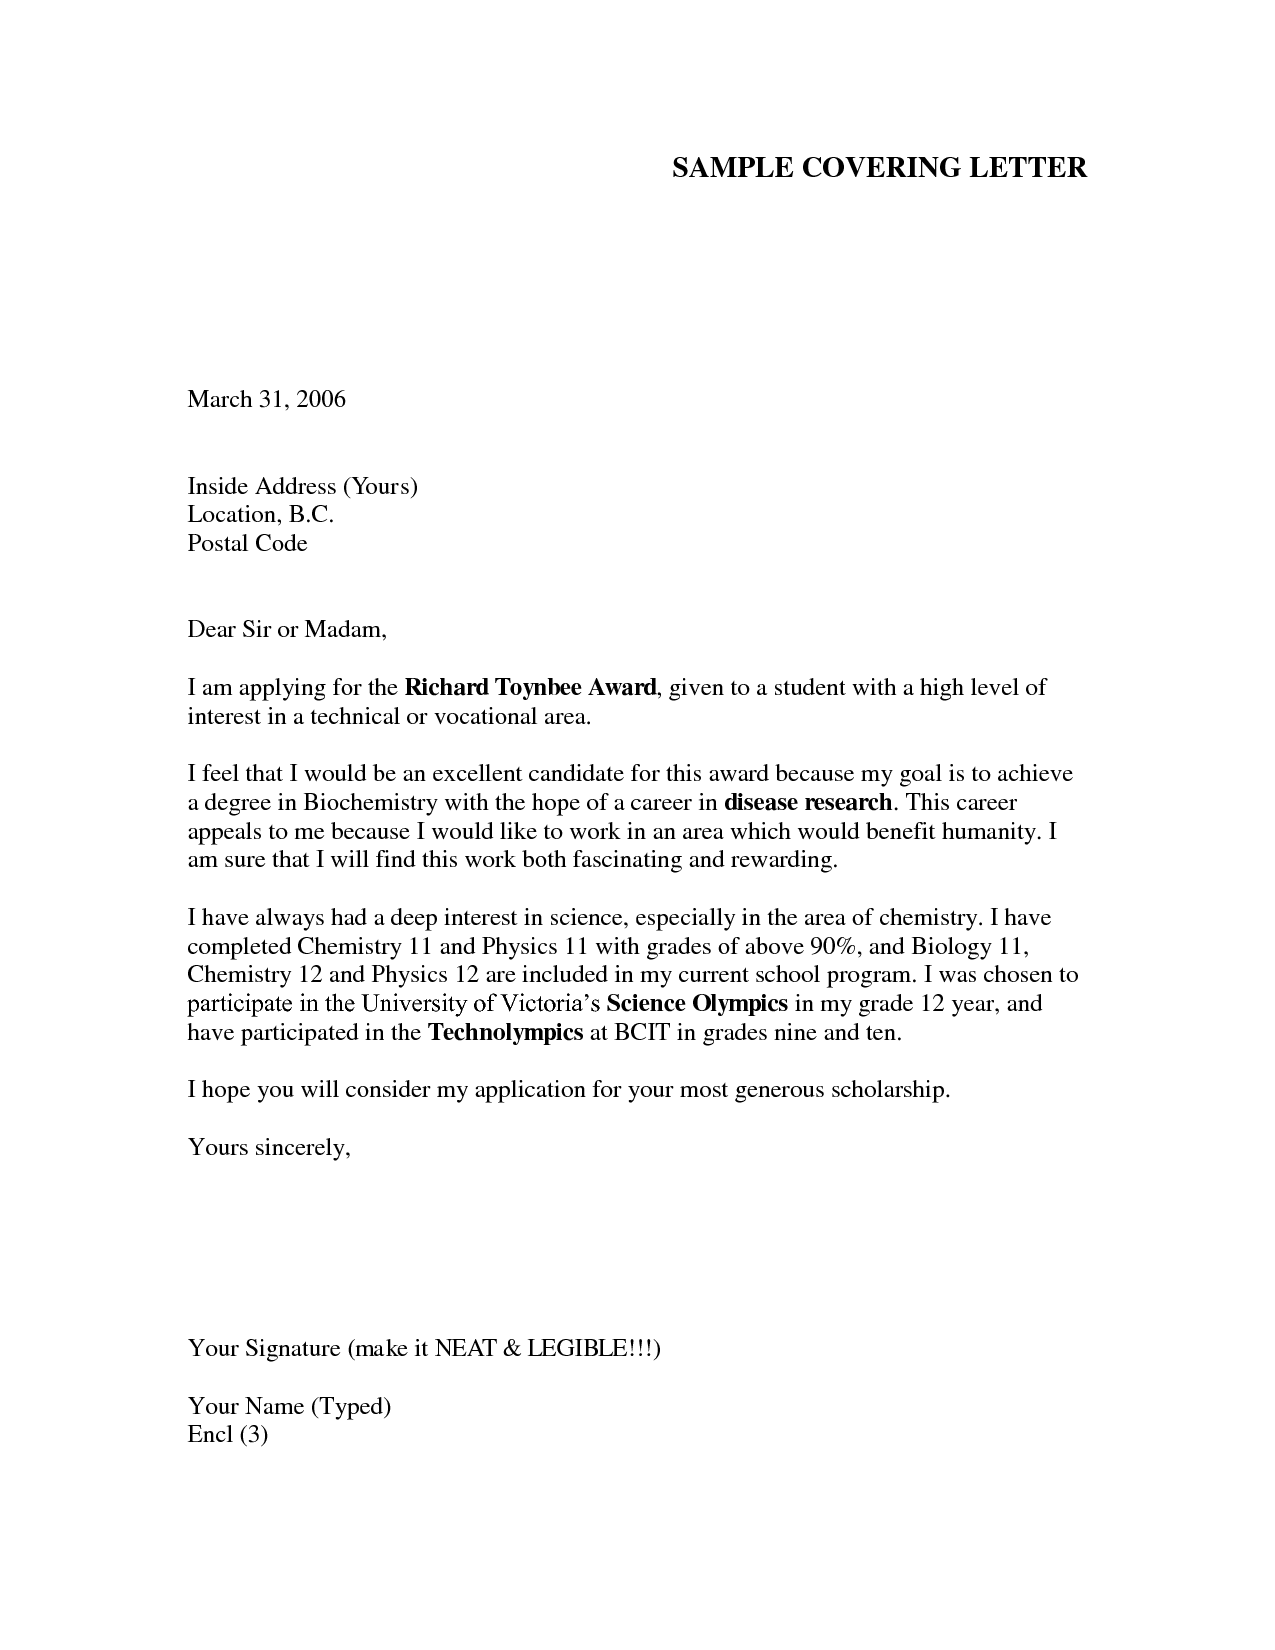 Example of job application cover letter seatledavidjoel example of job application cover letter altavistaventures Gallery